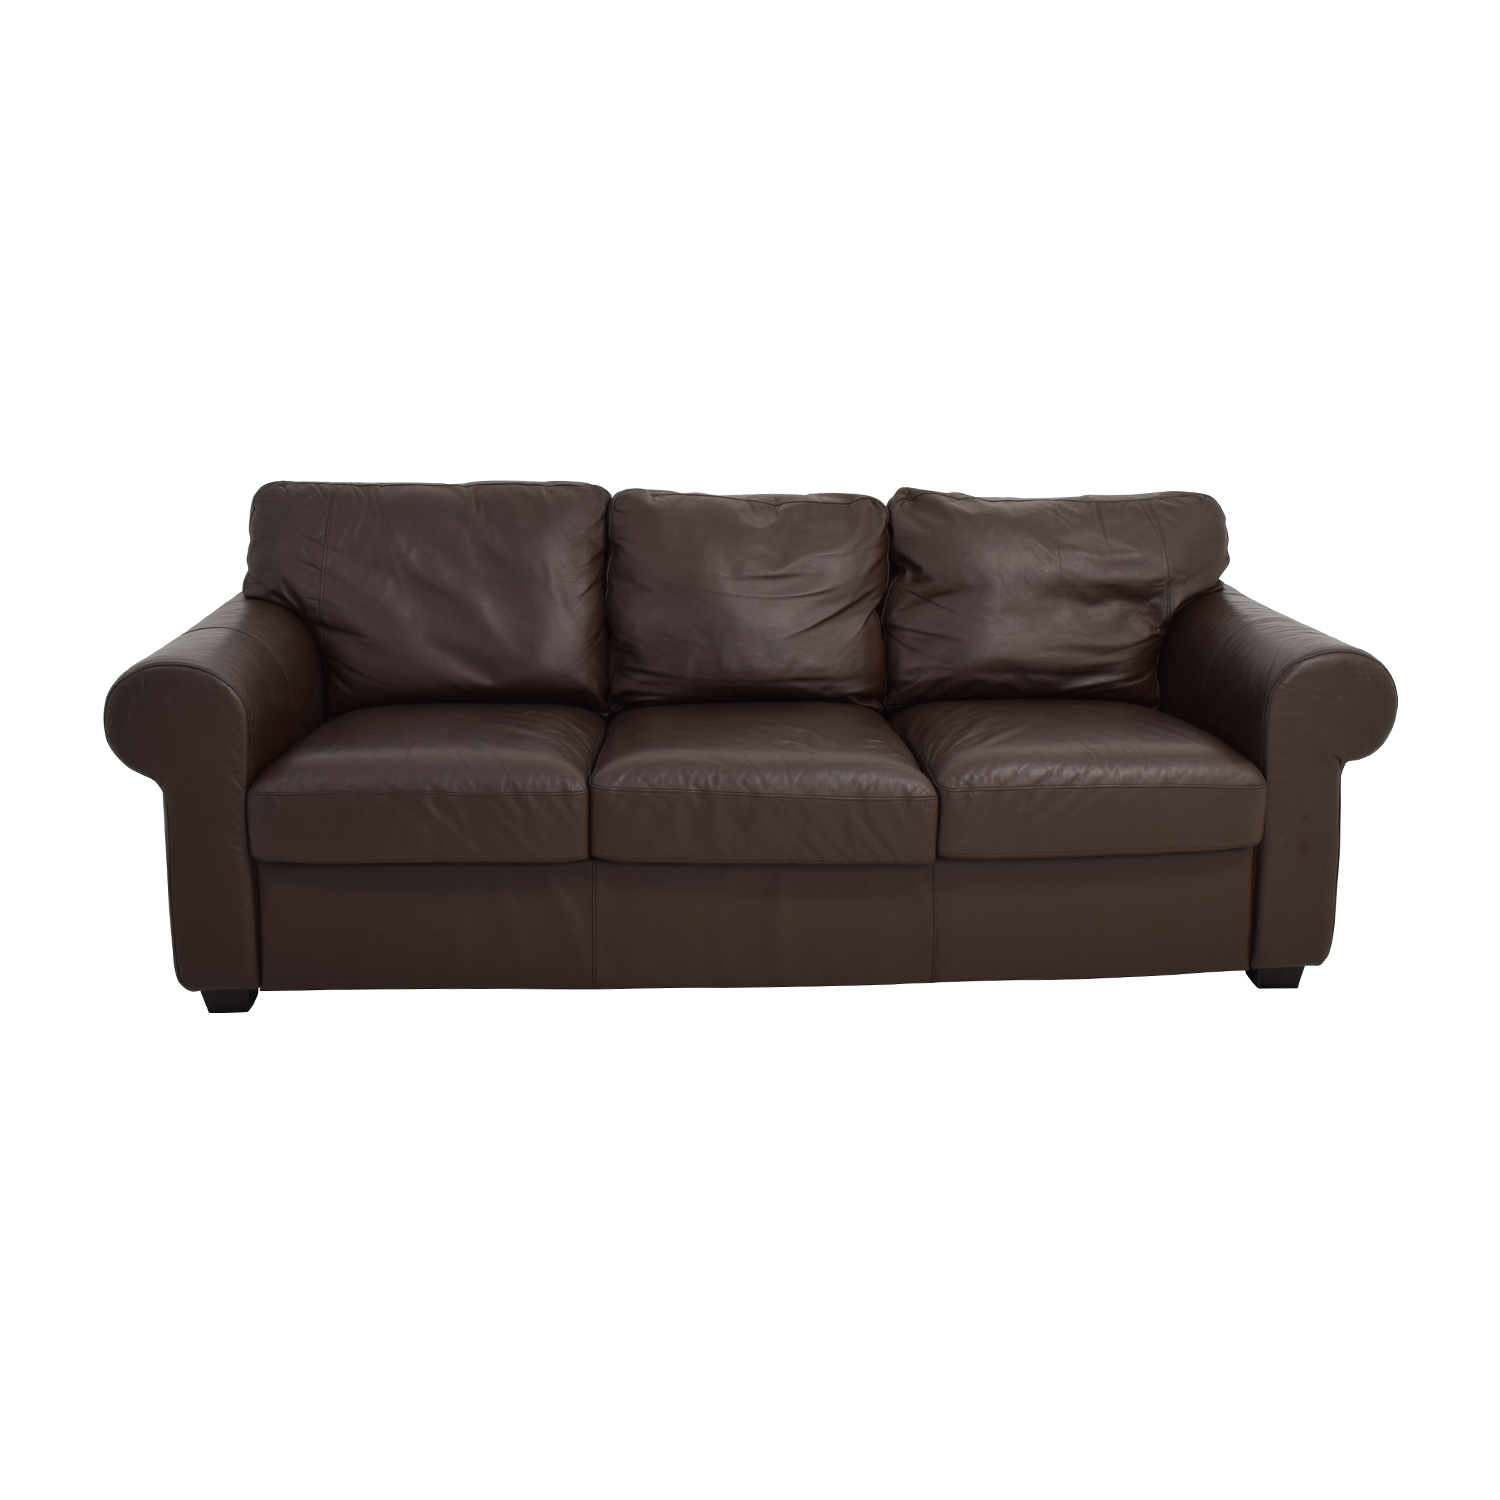 Cushions For Brown Leather Sofas Ikea Brown Sofa New Ikea Rp Sofa Bed 2seater Cover For